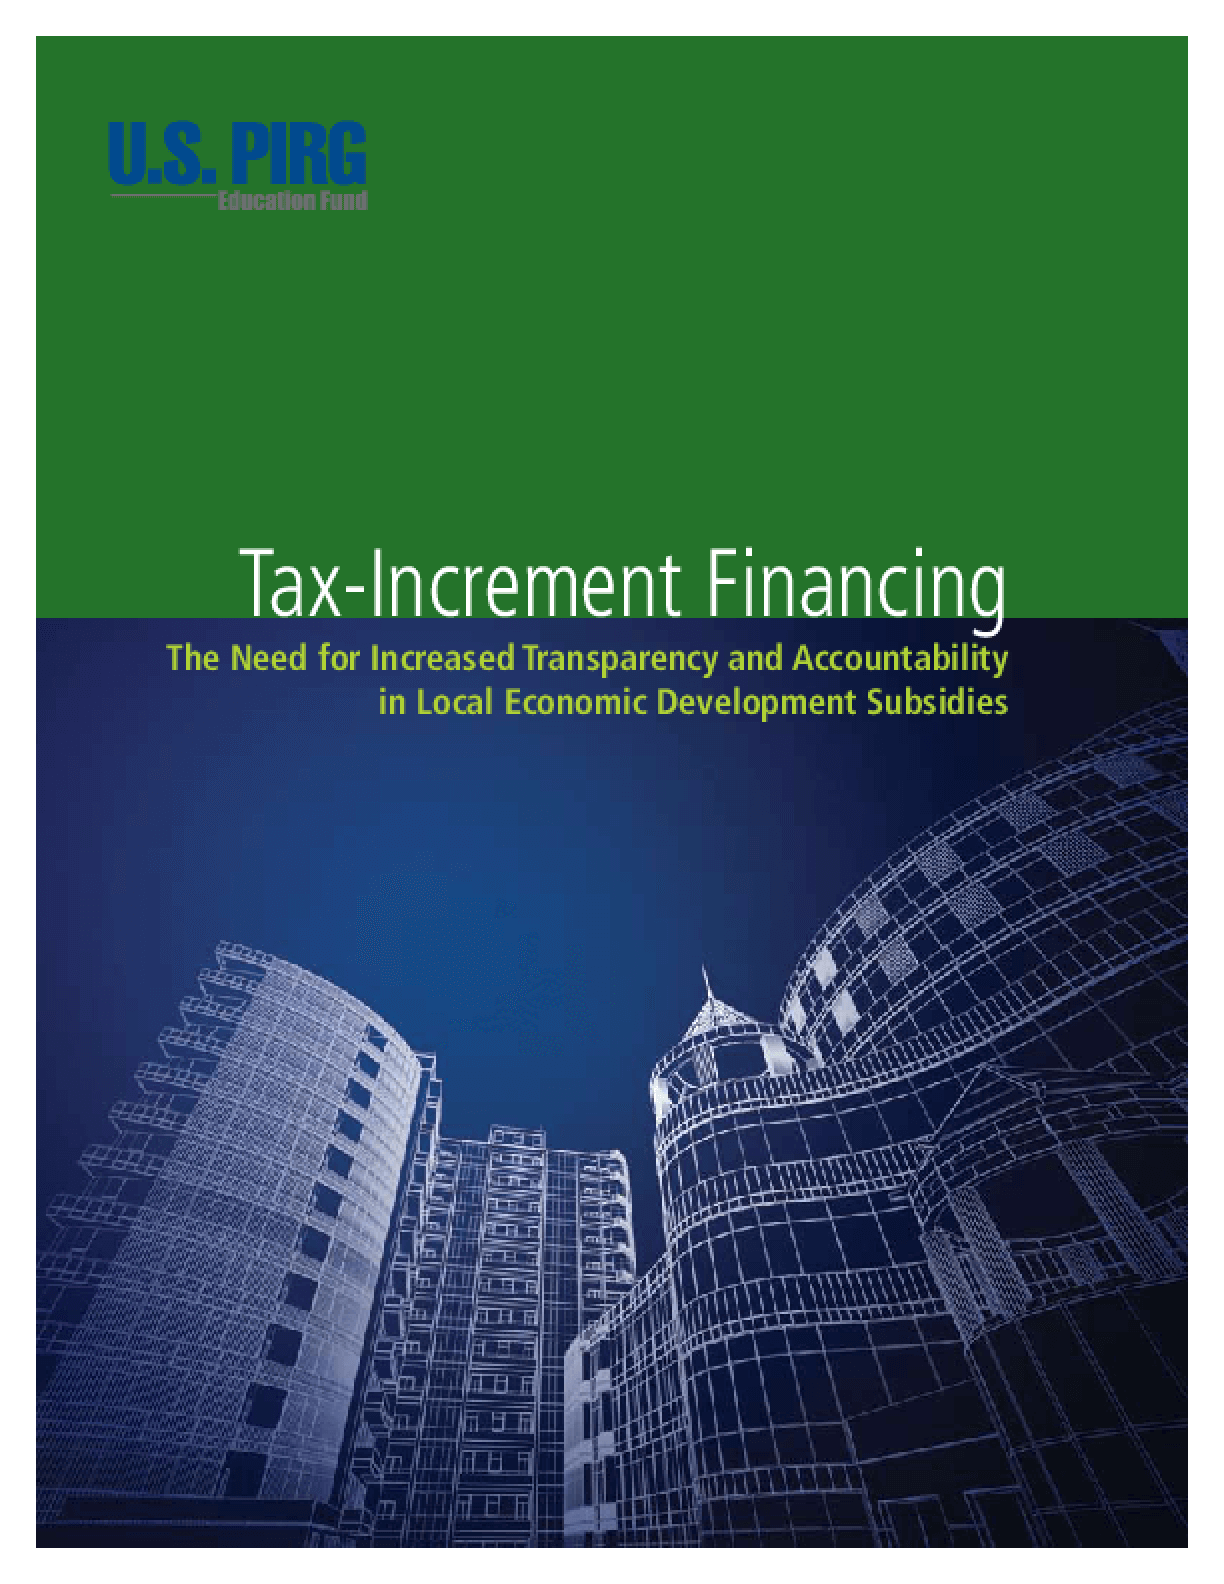 Tax-Increment Financing: The Need for Increased Transparency and Accountability in Local Economic Development Subsidies